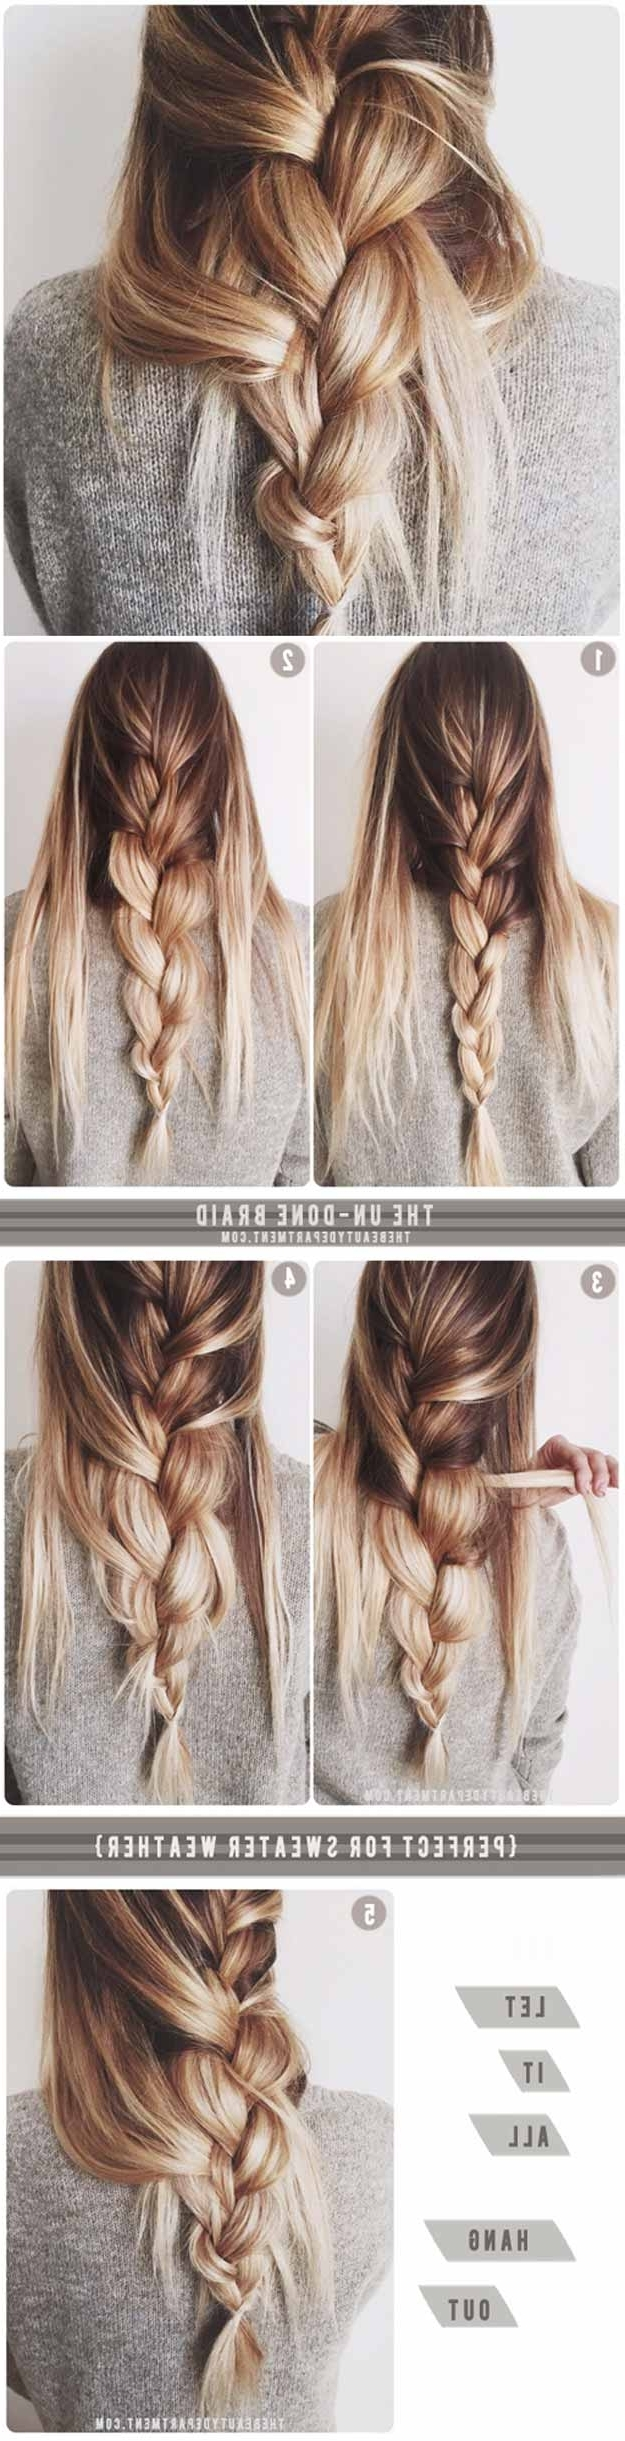 33 Best Hairstyles For Teens The Goddess Medium Length Hairstyles For Teenage Girl